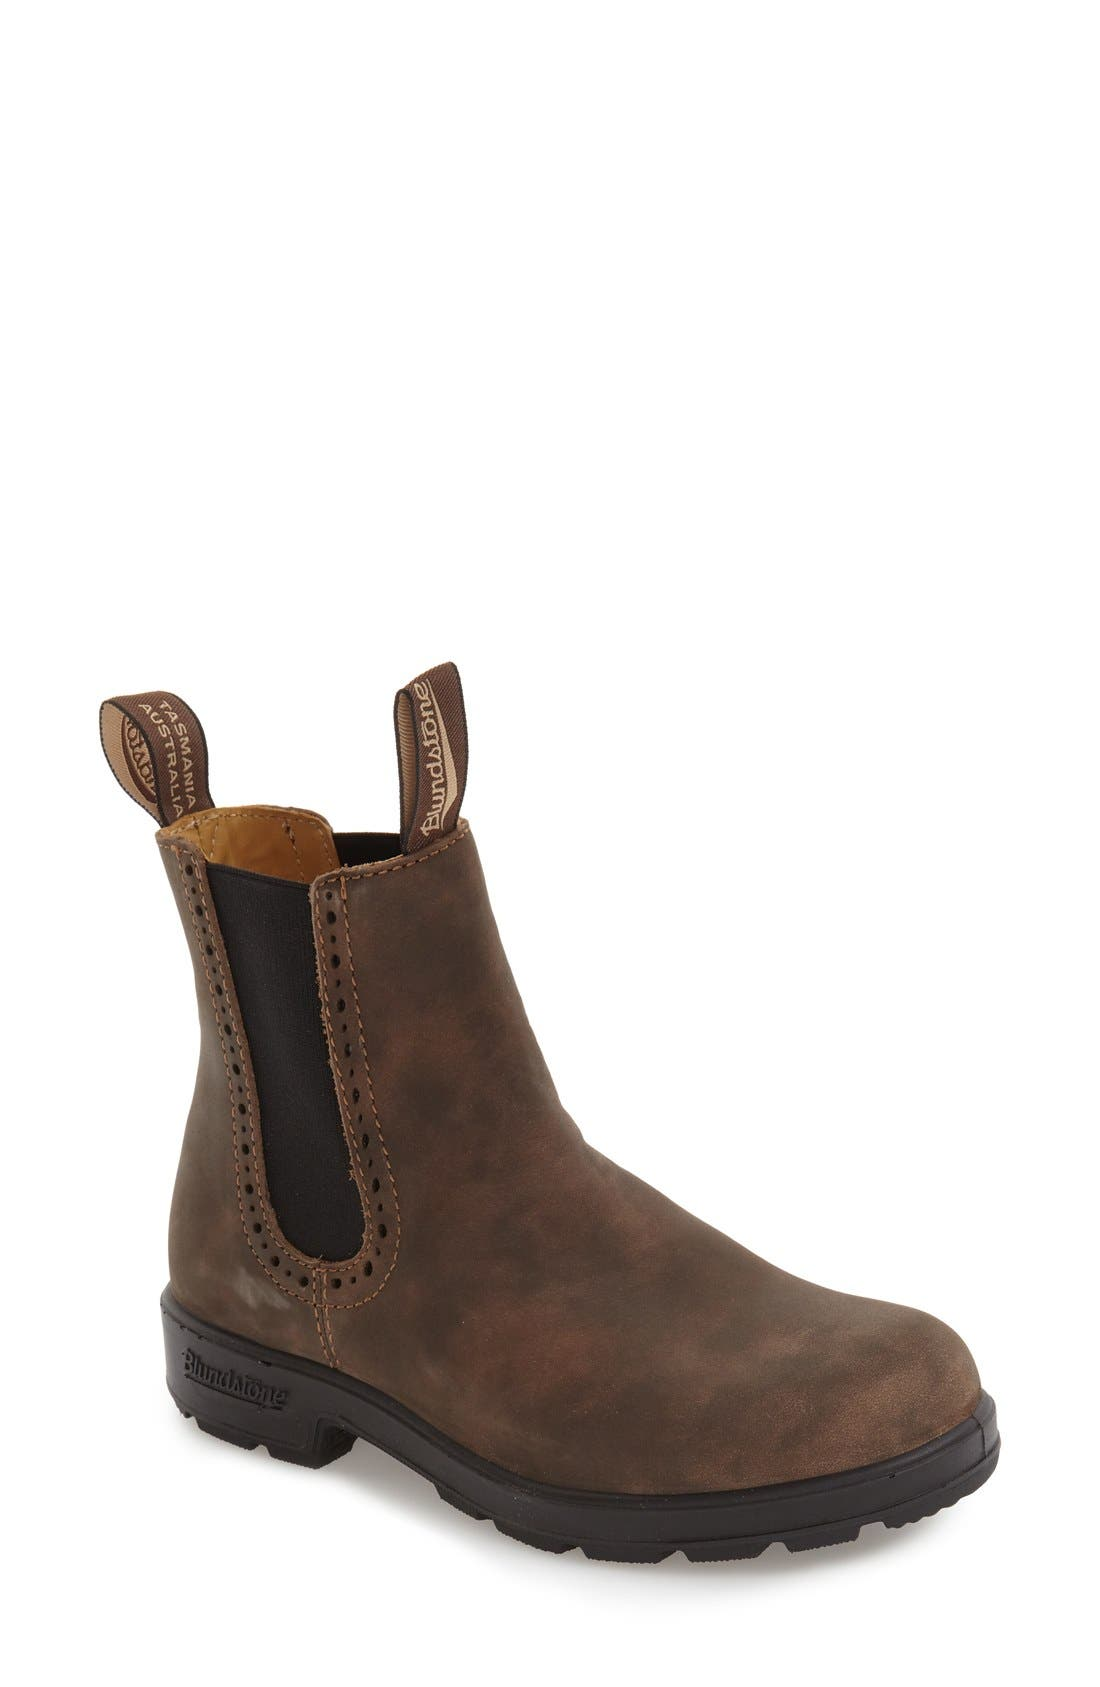 Footwear 'Original Series' Water Resistant Chelsea Boot,                         Main,                         color, Rustic Brown Leather